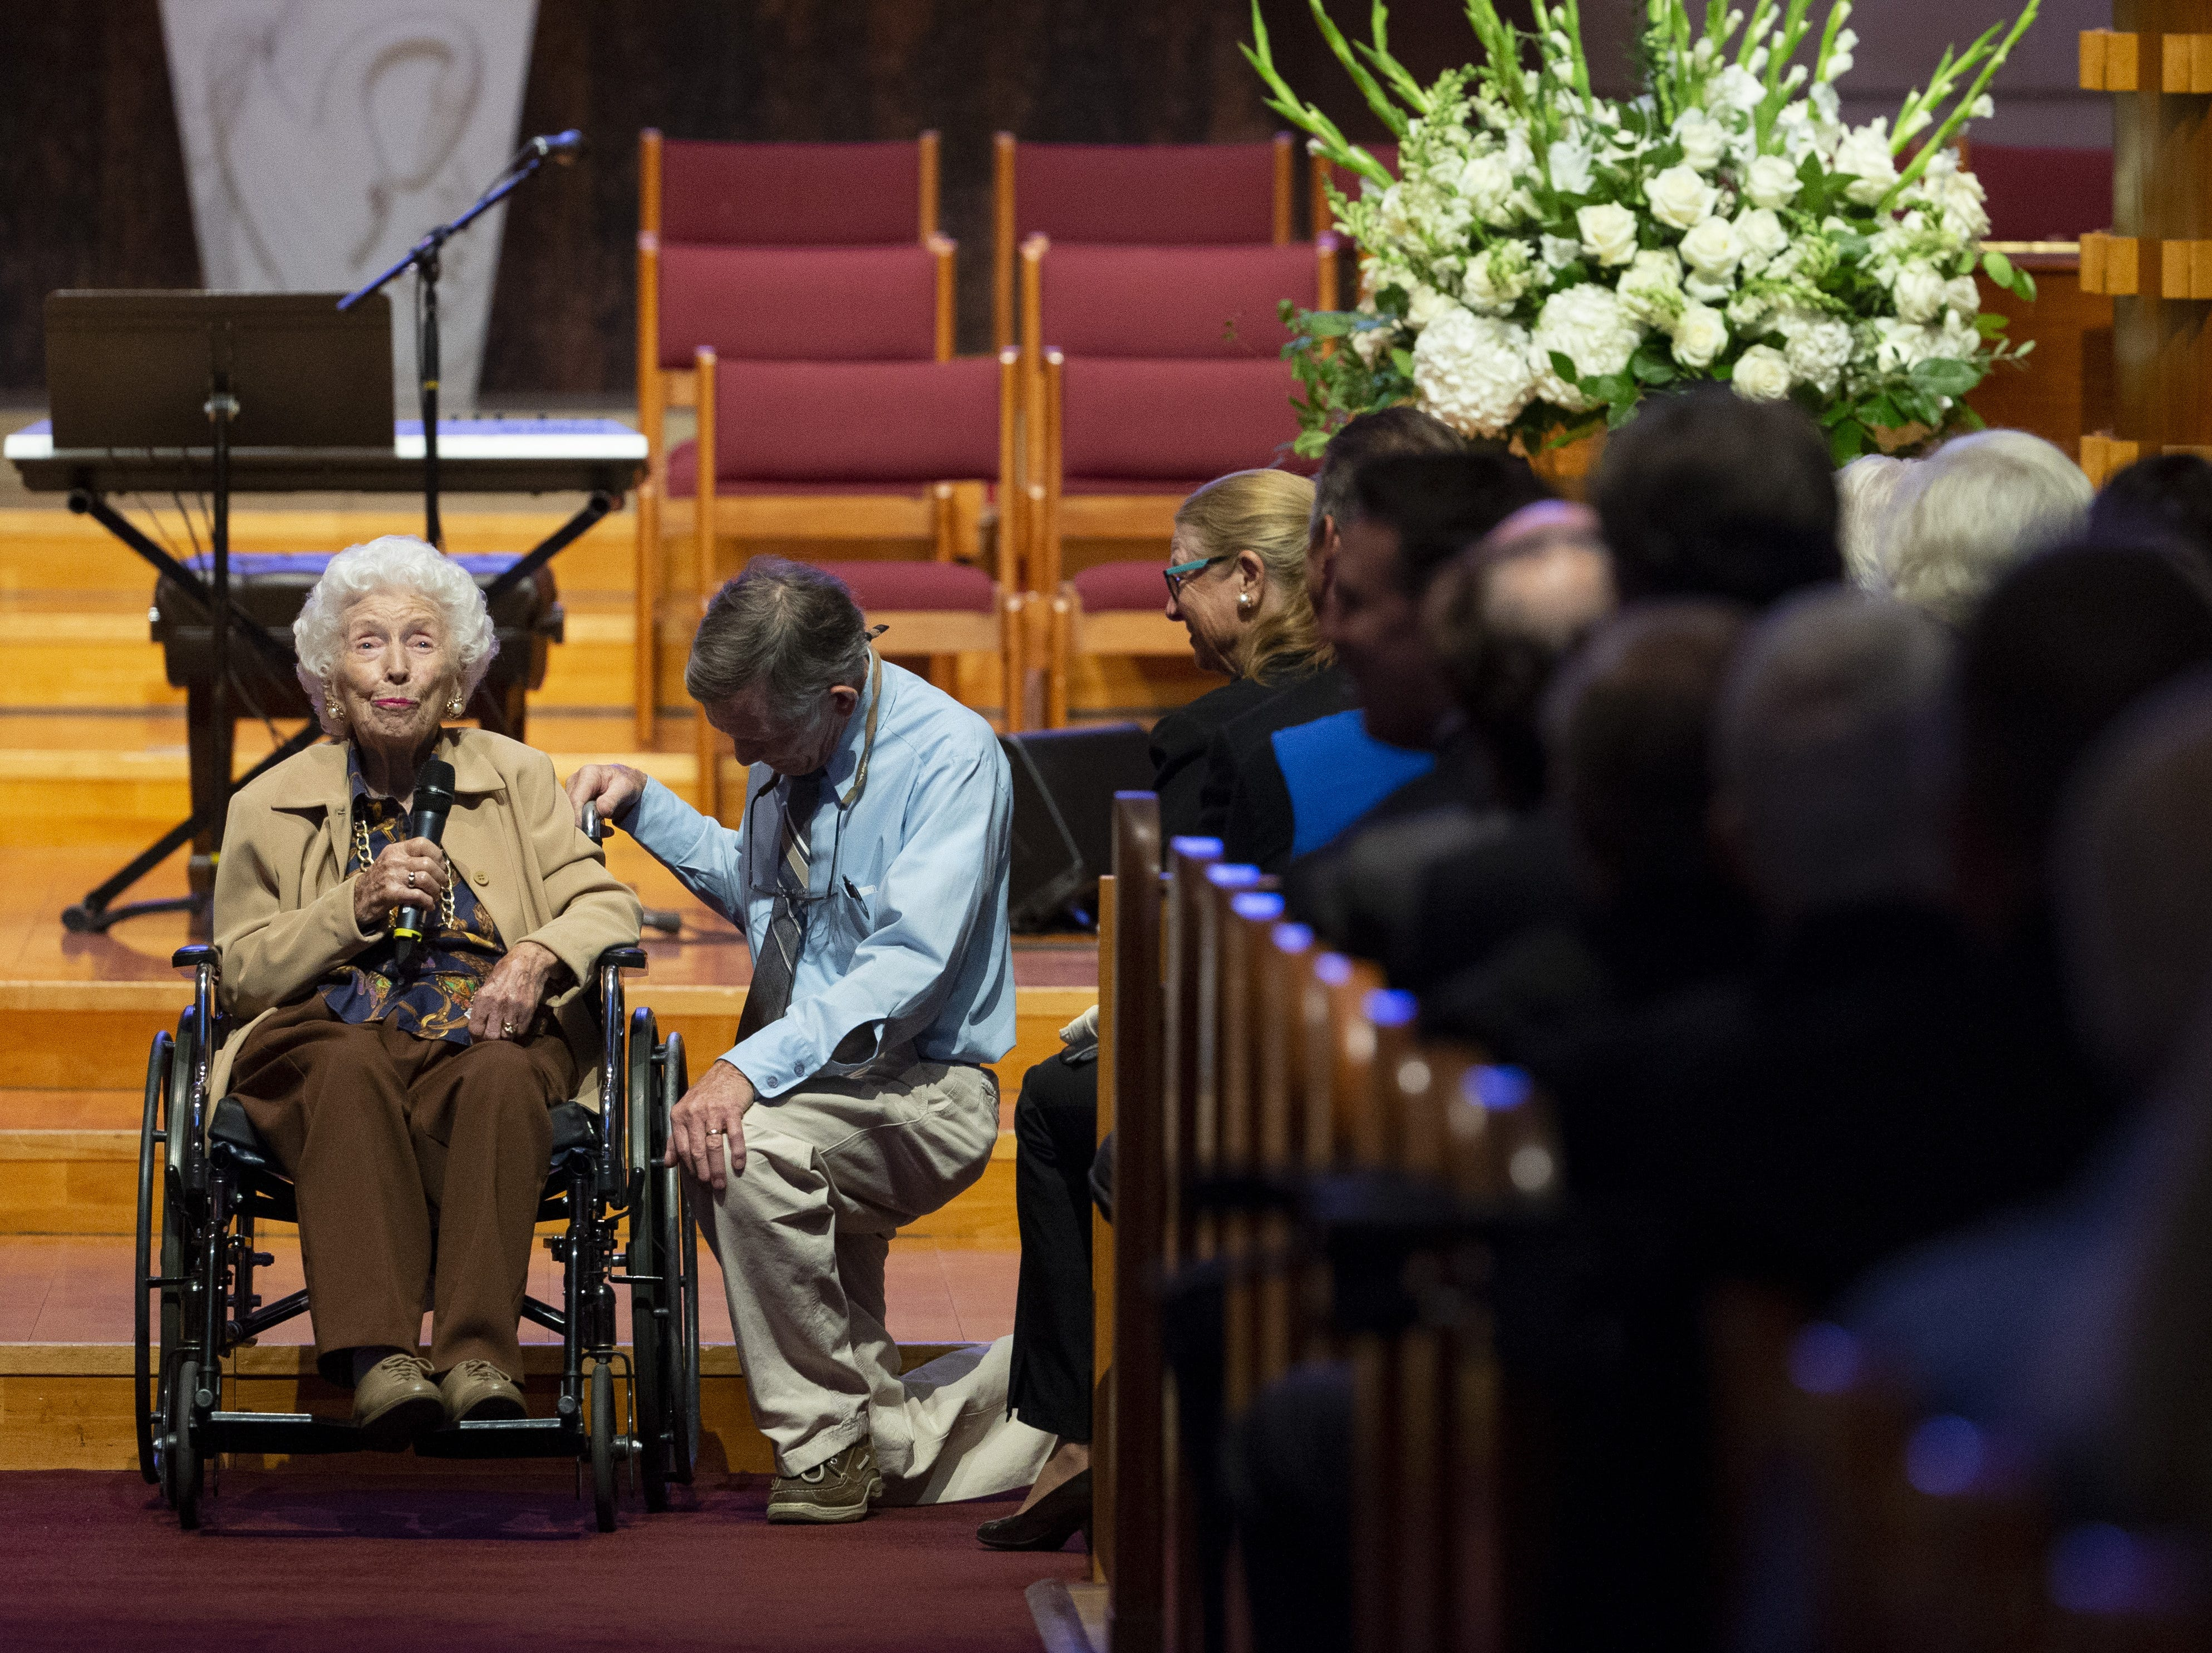 Jerry Emmett, 104, left, speaks during memorial services for her best friend, Carolyn Warner, at First United Methodist Church in on October 25, 2018, with her son, Jim at her side. Warner was the 15th Superintendent of Public Education for the state of Arizona and nearly became the state's first female governor in 1986.